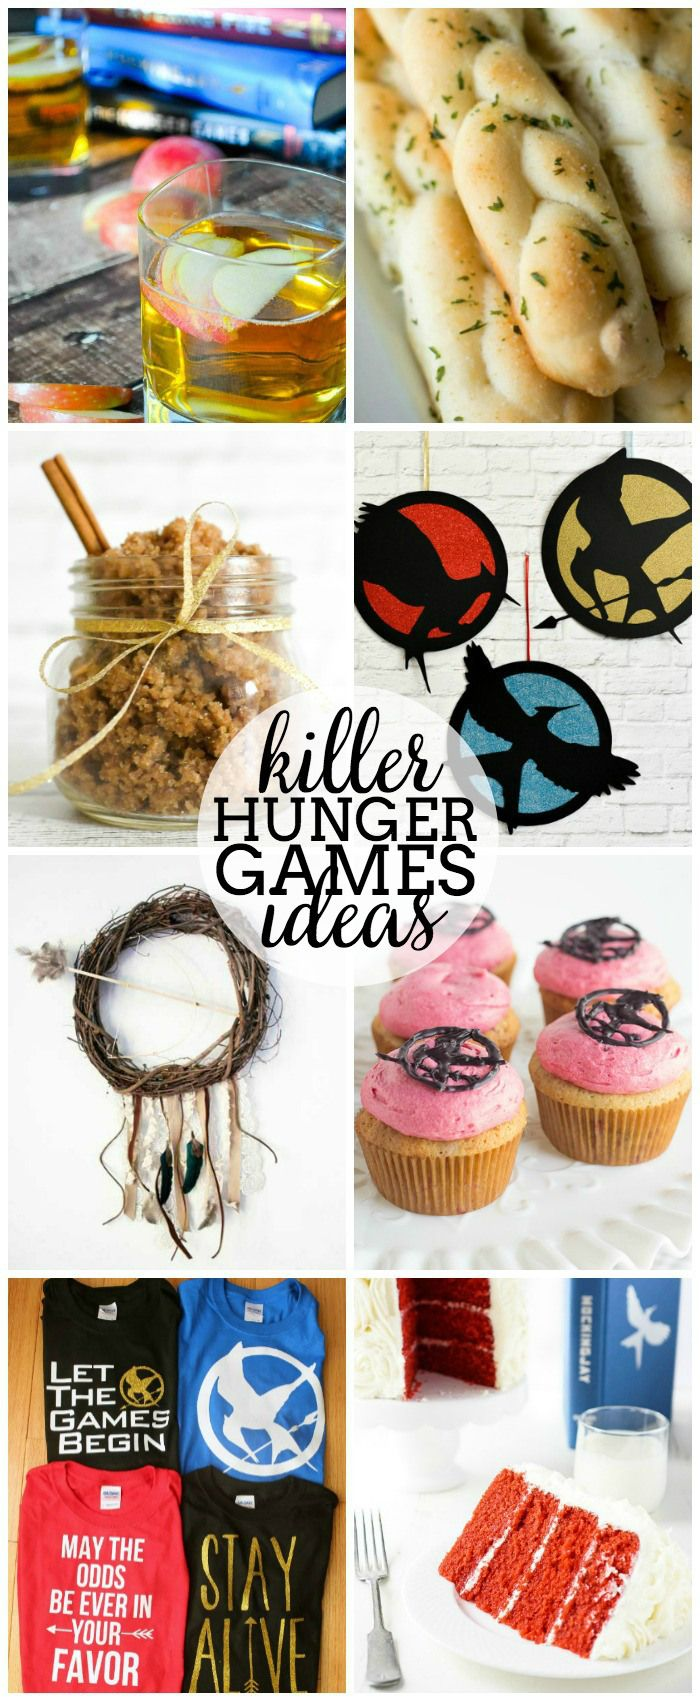 Do you love The Hunger Games, you'll love these amazing recipes and crafts inspired by the series! They're perfect for throwing a party and some are great just because like that Girl on Fireball Cocktail or that Nightlock Berry Cupcakes!